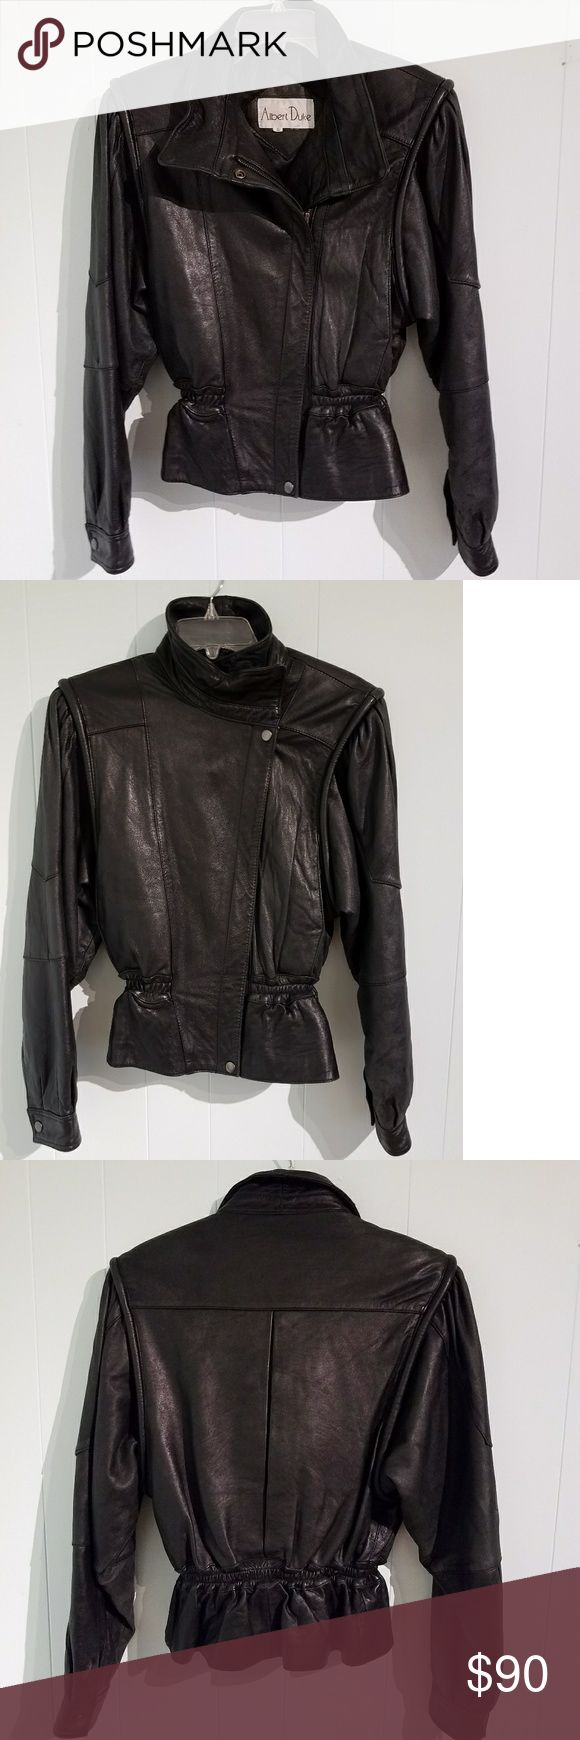 Vintage Black leather Moto Jacket Sz S 80-90's ladies Black Leather Jacket by Albert Duke Sz Small (True to size). Zip (Sturdy zipper) and snap closure, elastic cinched waist. Some distress as to age overall good to very good used condition! Albert Duke Jackets & Coats